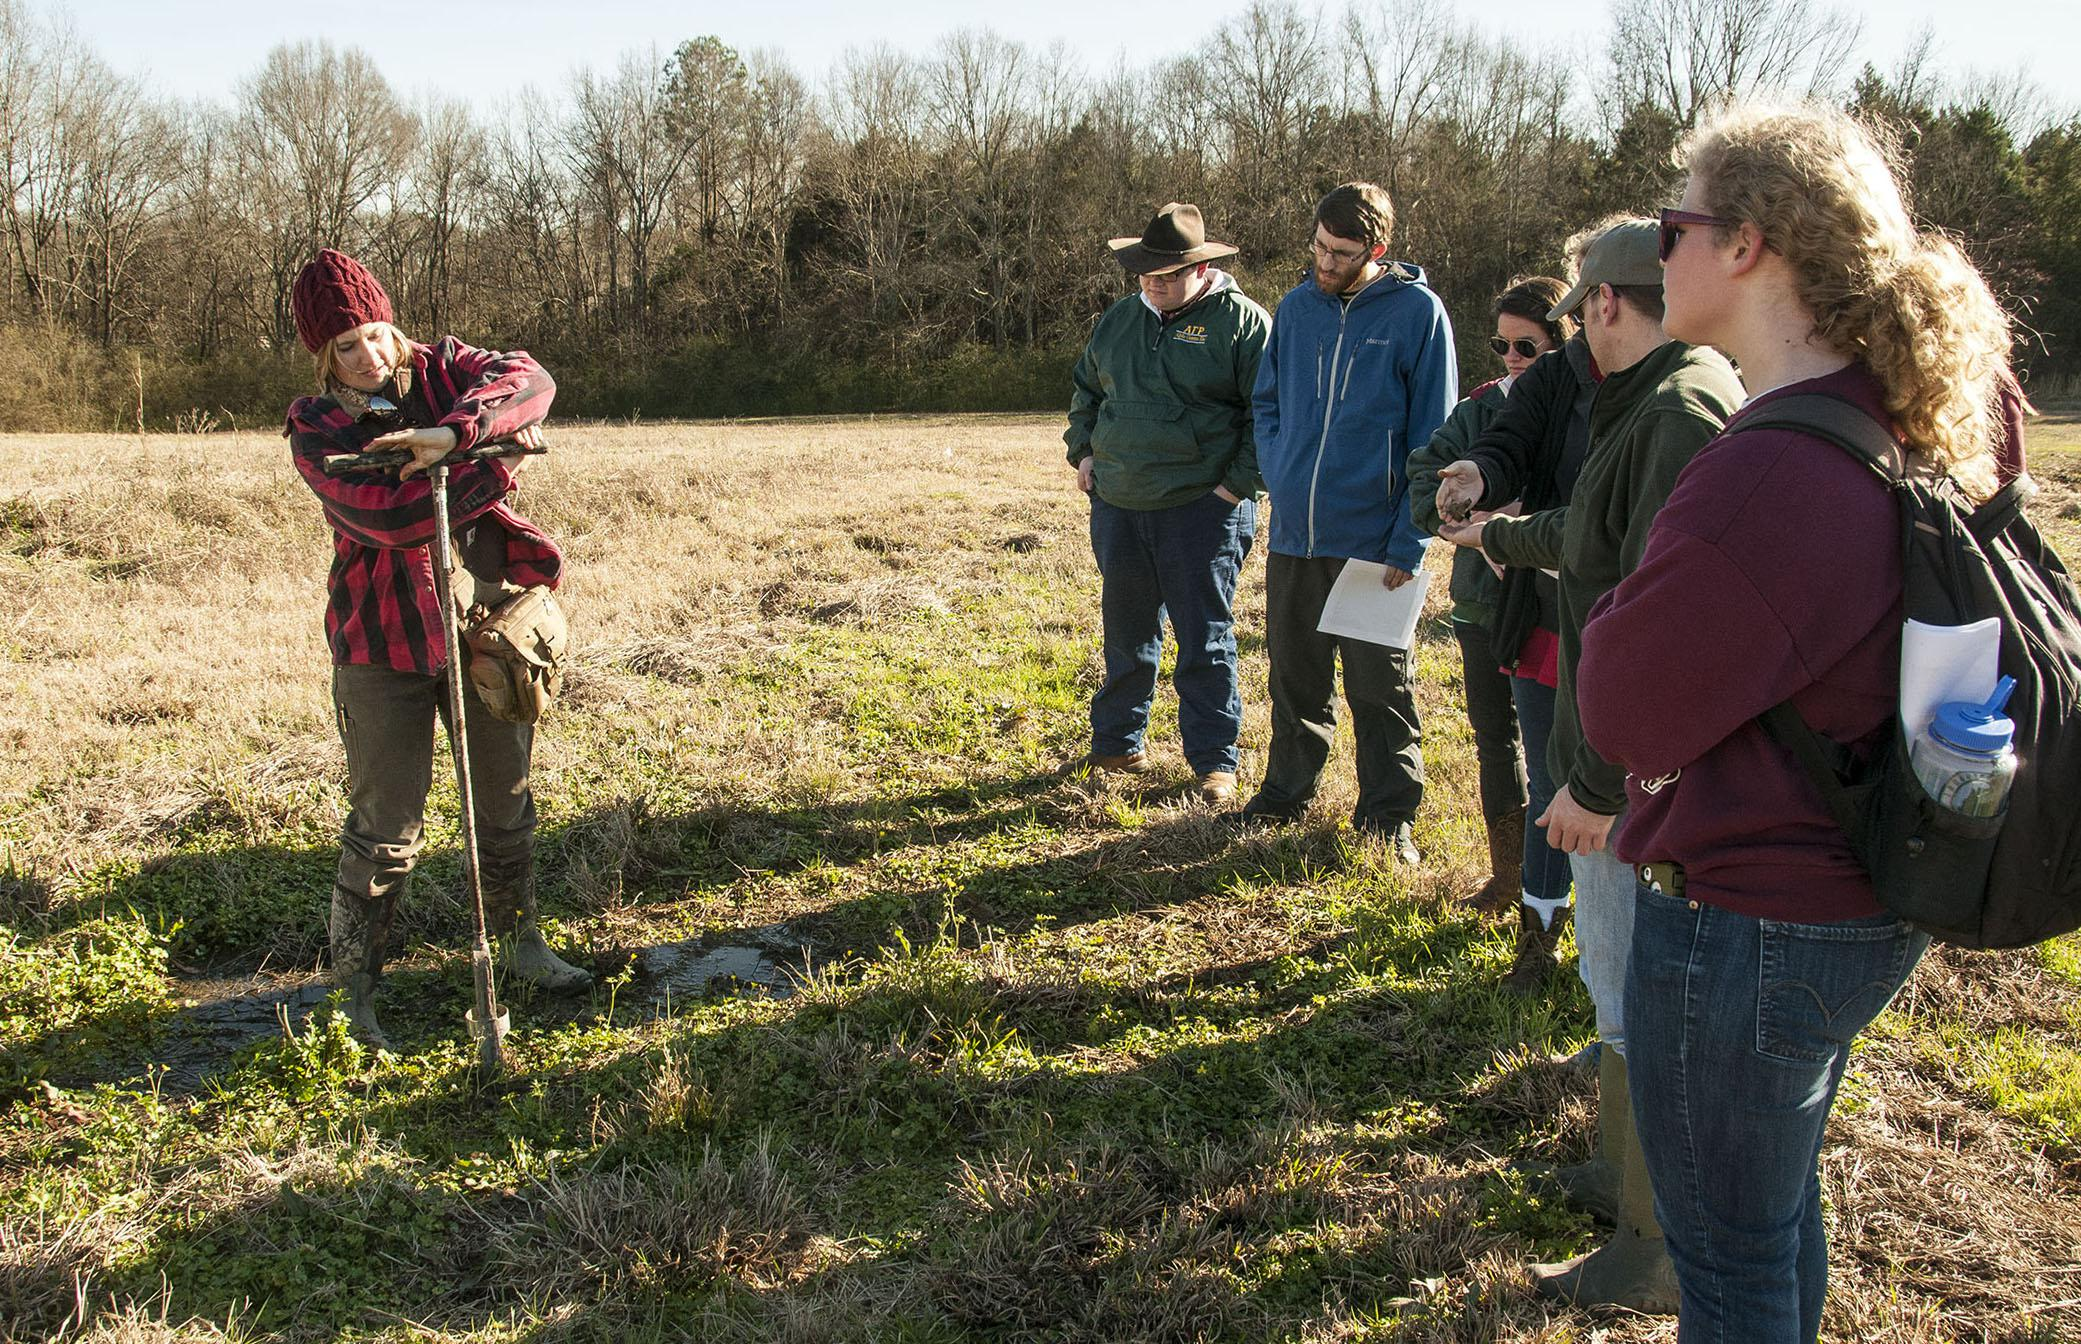 Rachel Stout Evans, a soil scientist with the Natural Resources Conservation Service, takes soil samples on Feb. 1, 2013, at the newly established Mississippi State University student farm to show students how soil types drive decision-making for land use. (Photo by MSU Ag Communications/Scott Corey).